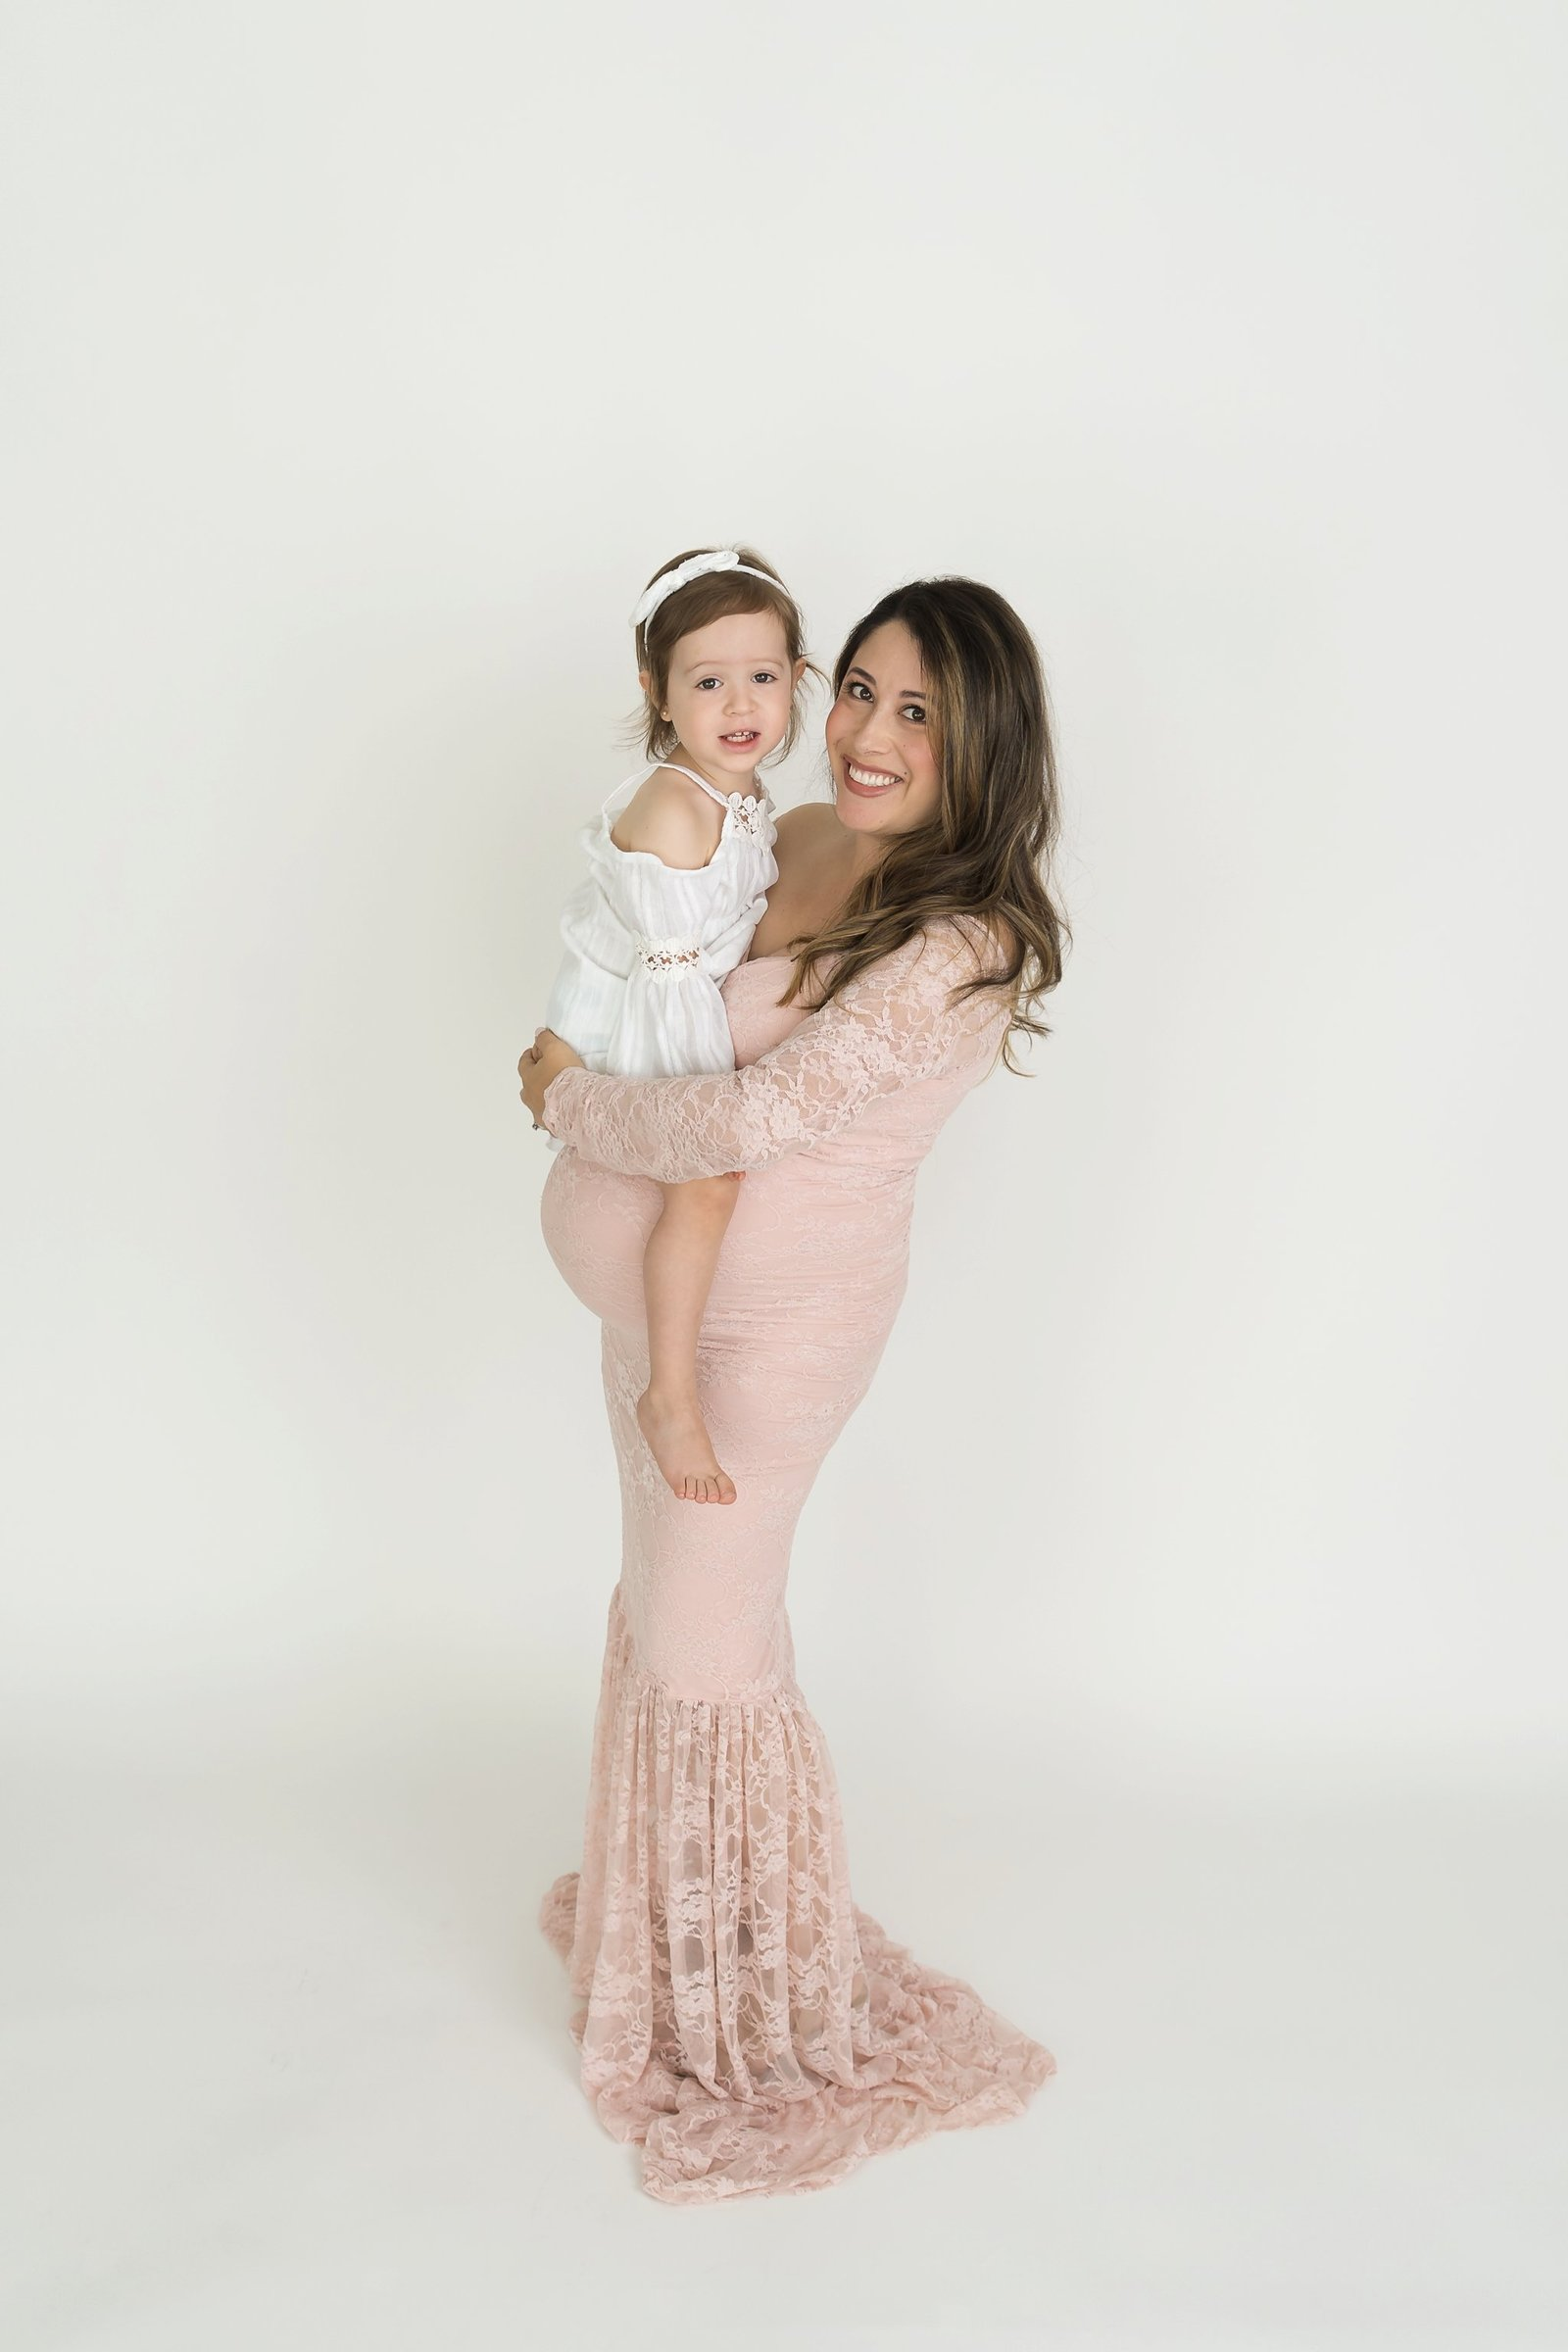 orange-county-newborn-photographer_0030